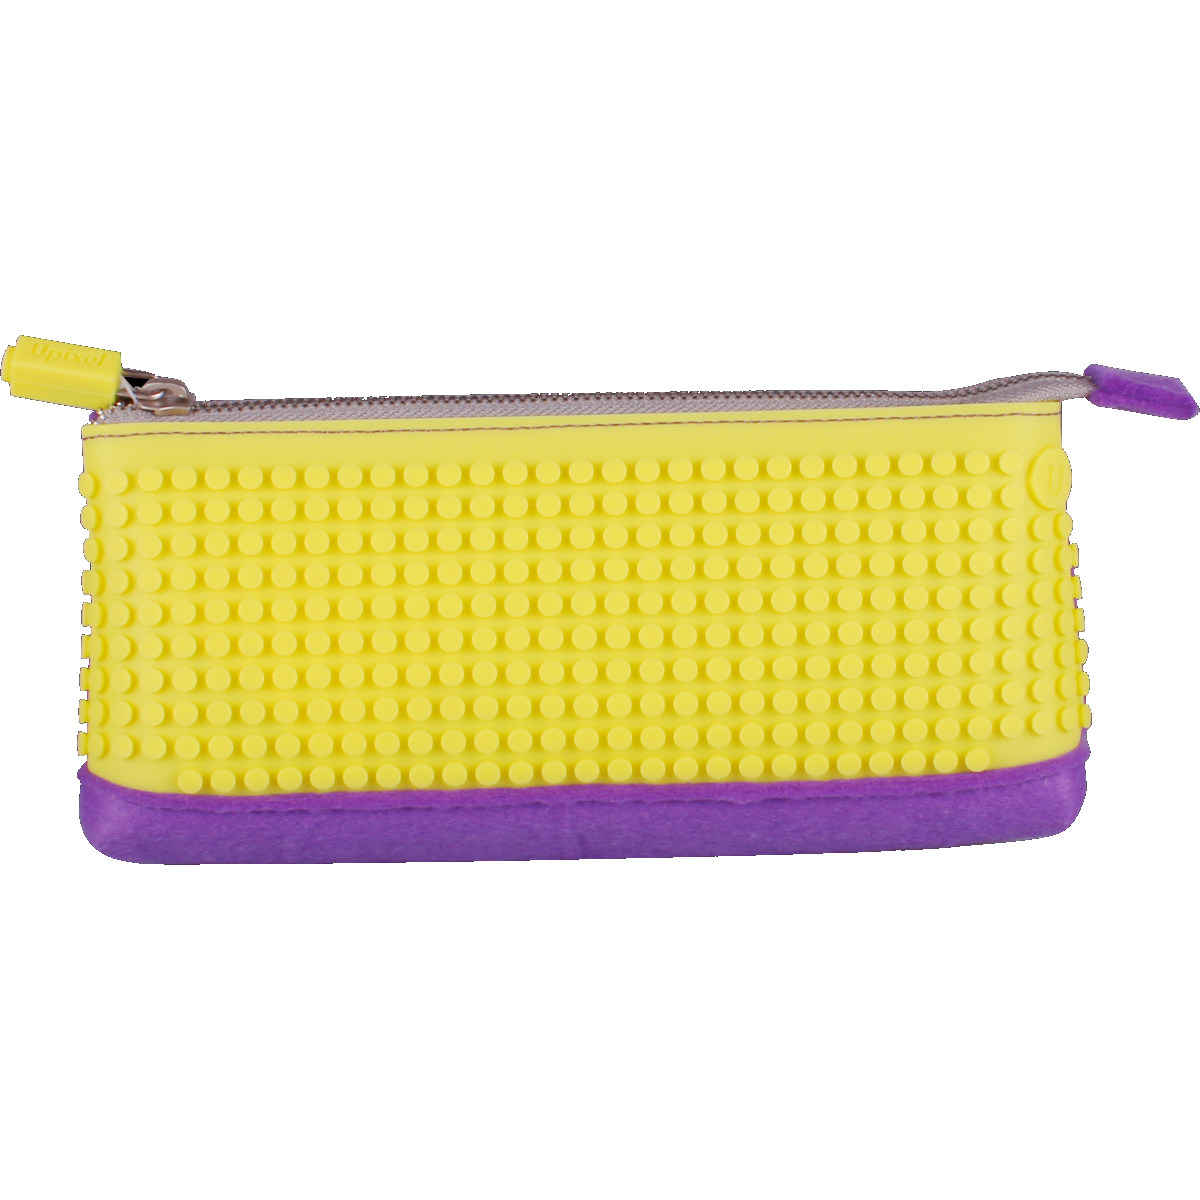 Pencil Case - Yellow/Purple